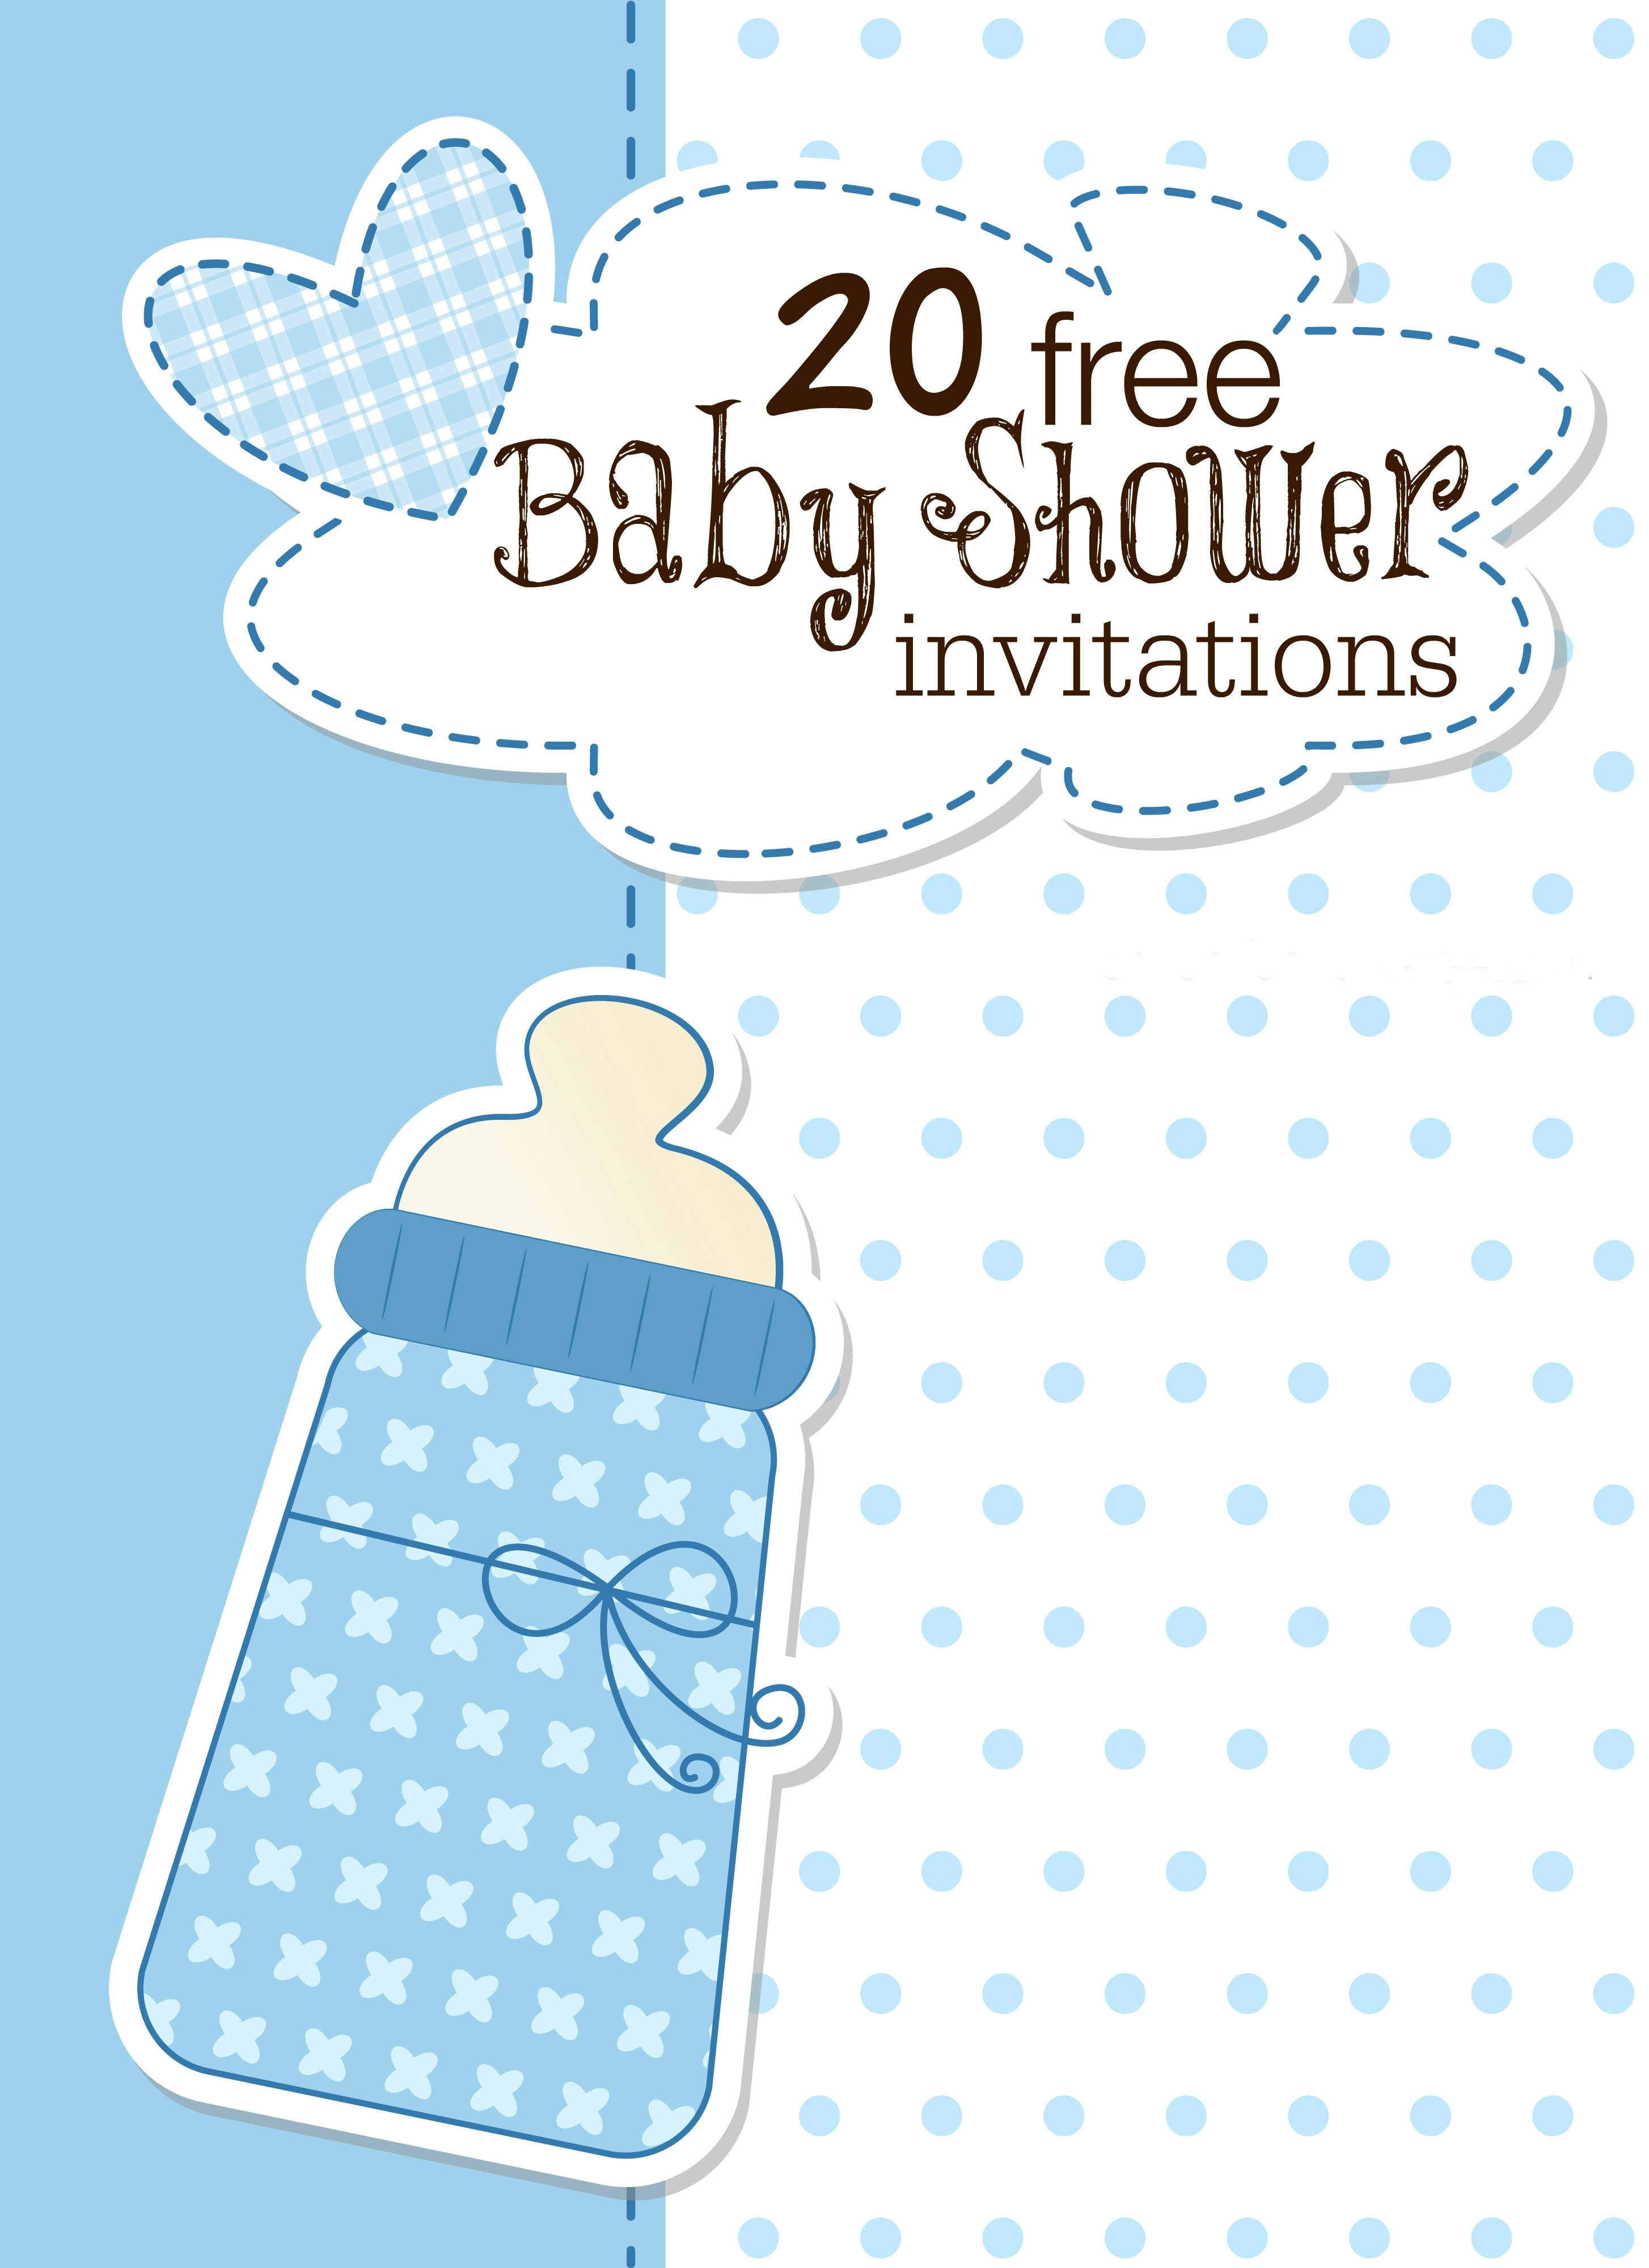 Printable Baby Shower Invitations - Free Printable Baby Shower Cards Templates